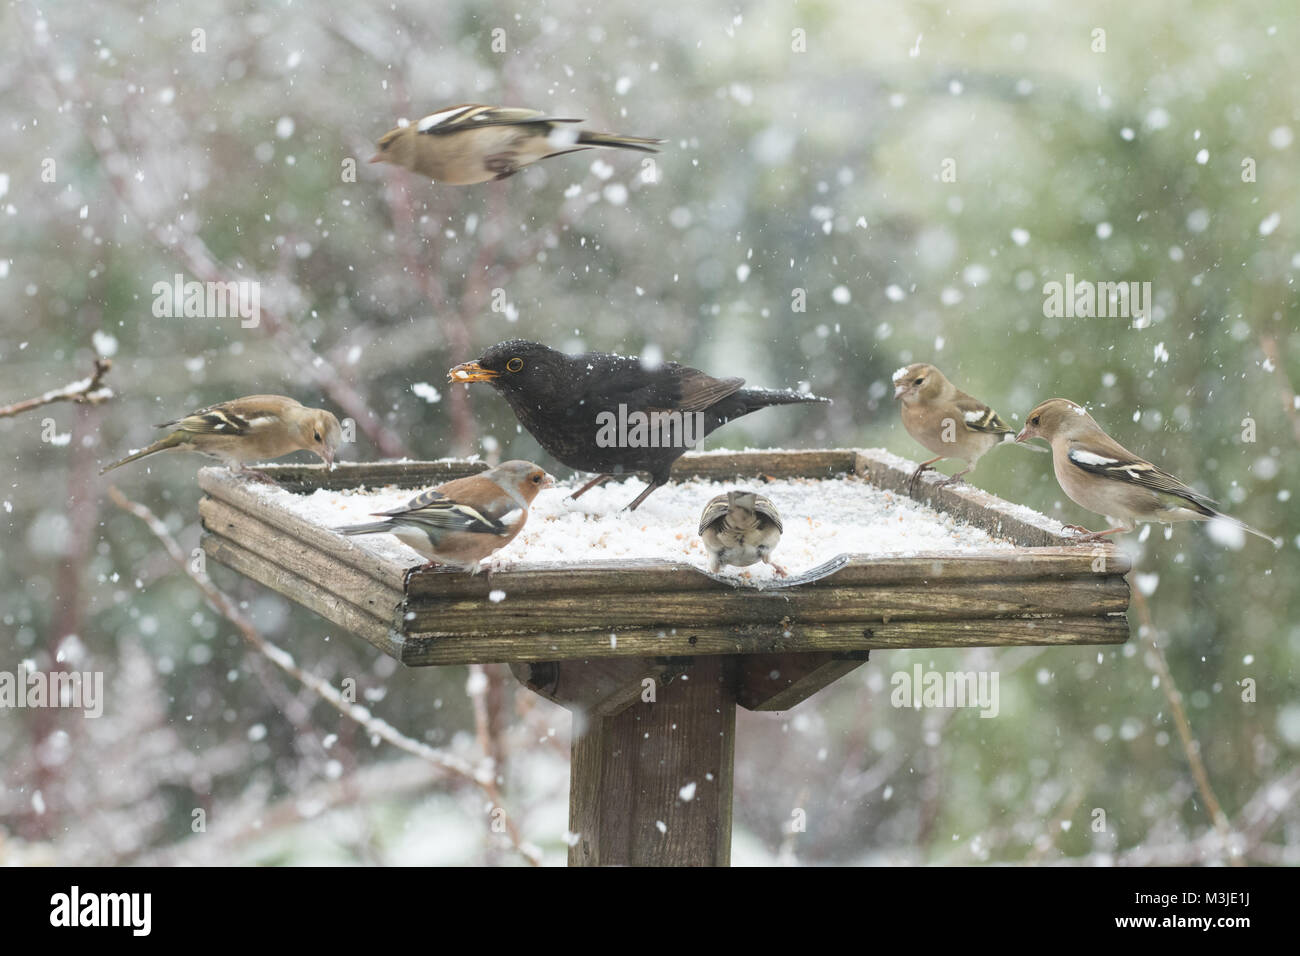 Stirlingshire, Scotland, UK - 11 February 2018: UK weather - busy bird table during a heavy snow shower in Stirlingshire Stock Photo